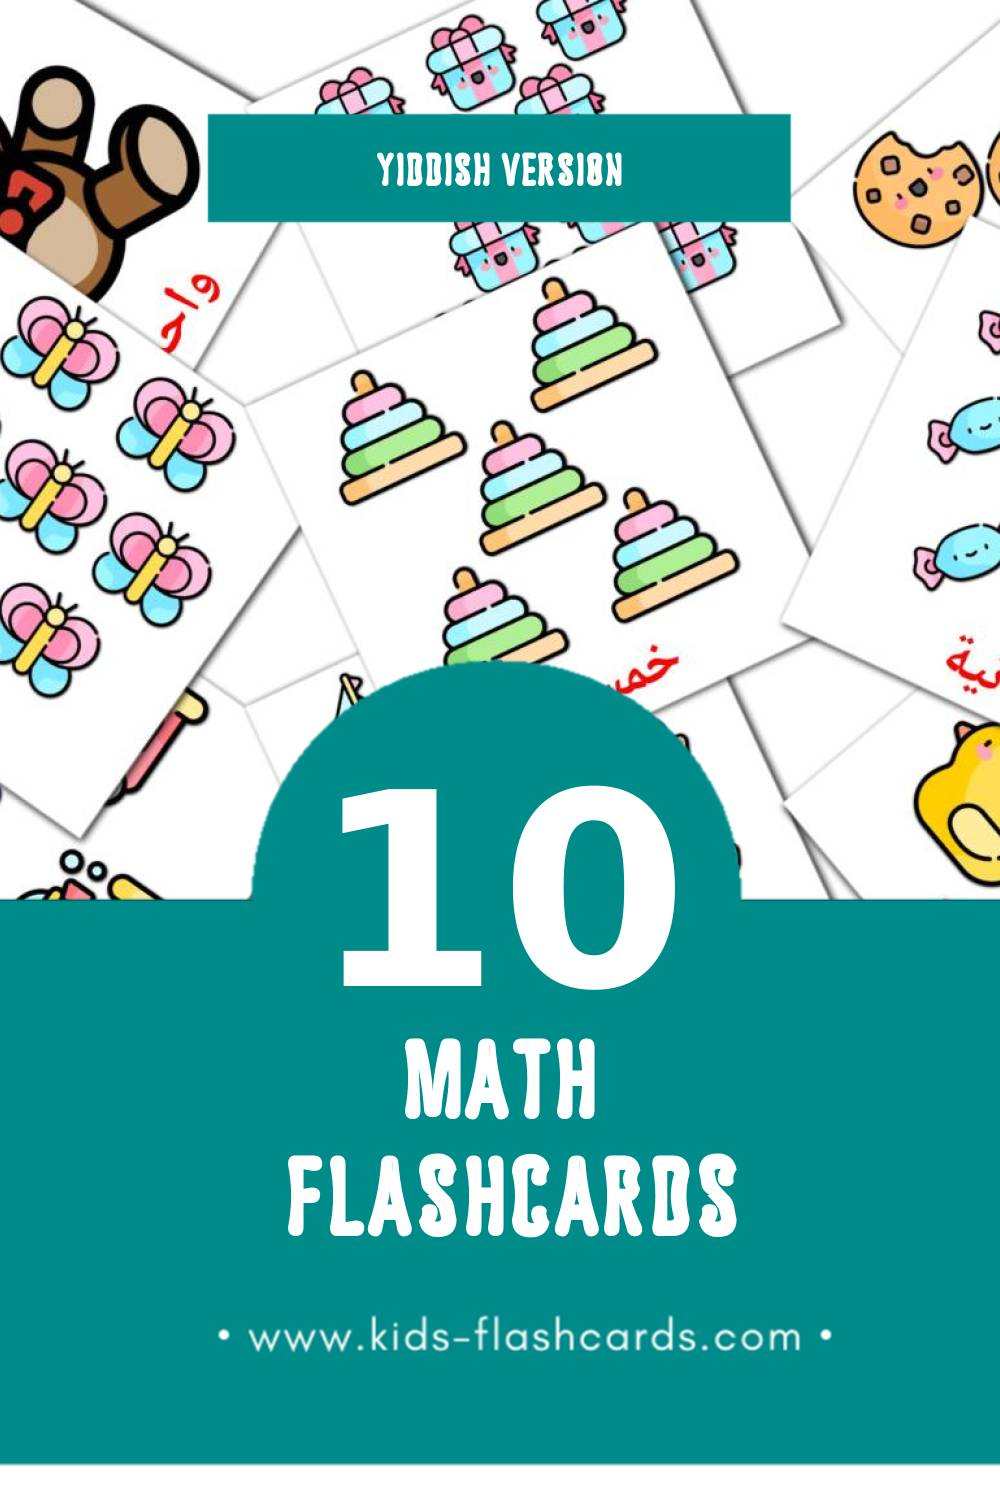 Visual رياضيات  Flashcards for Toddlers (10 cards in Yiddish)